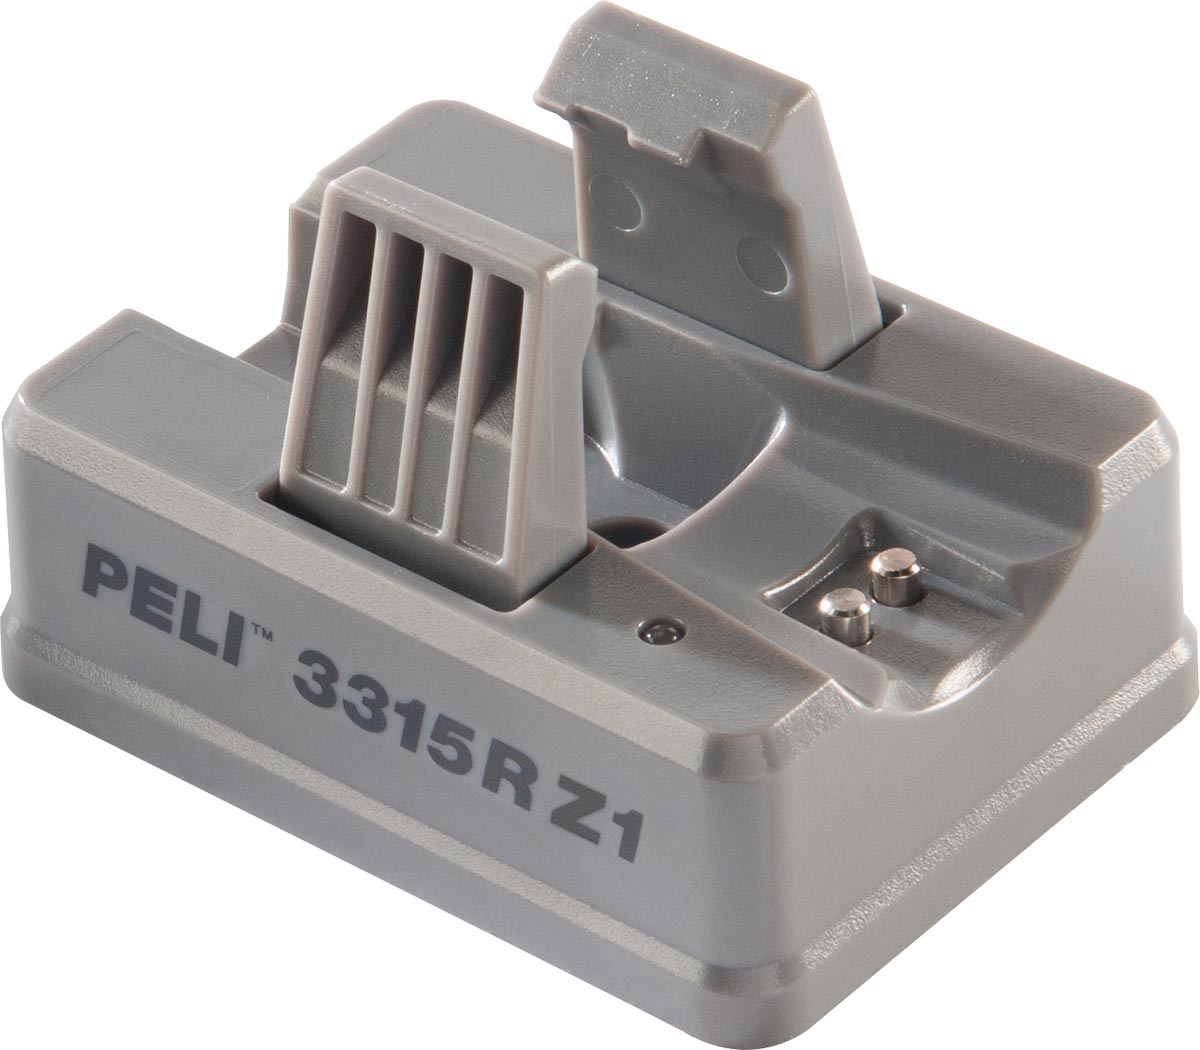 peli 3318 deck dash charger base